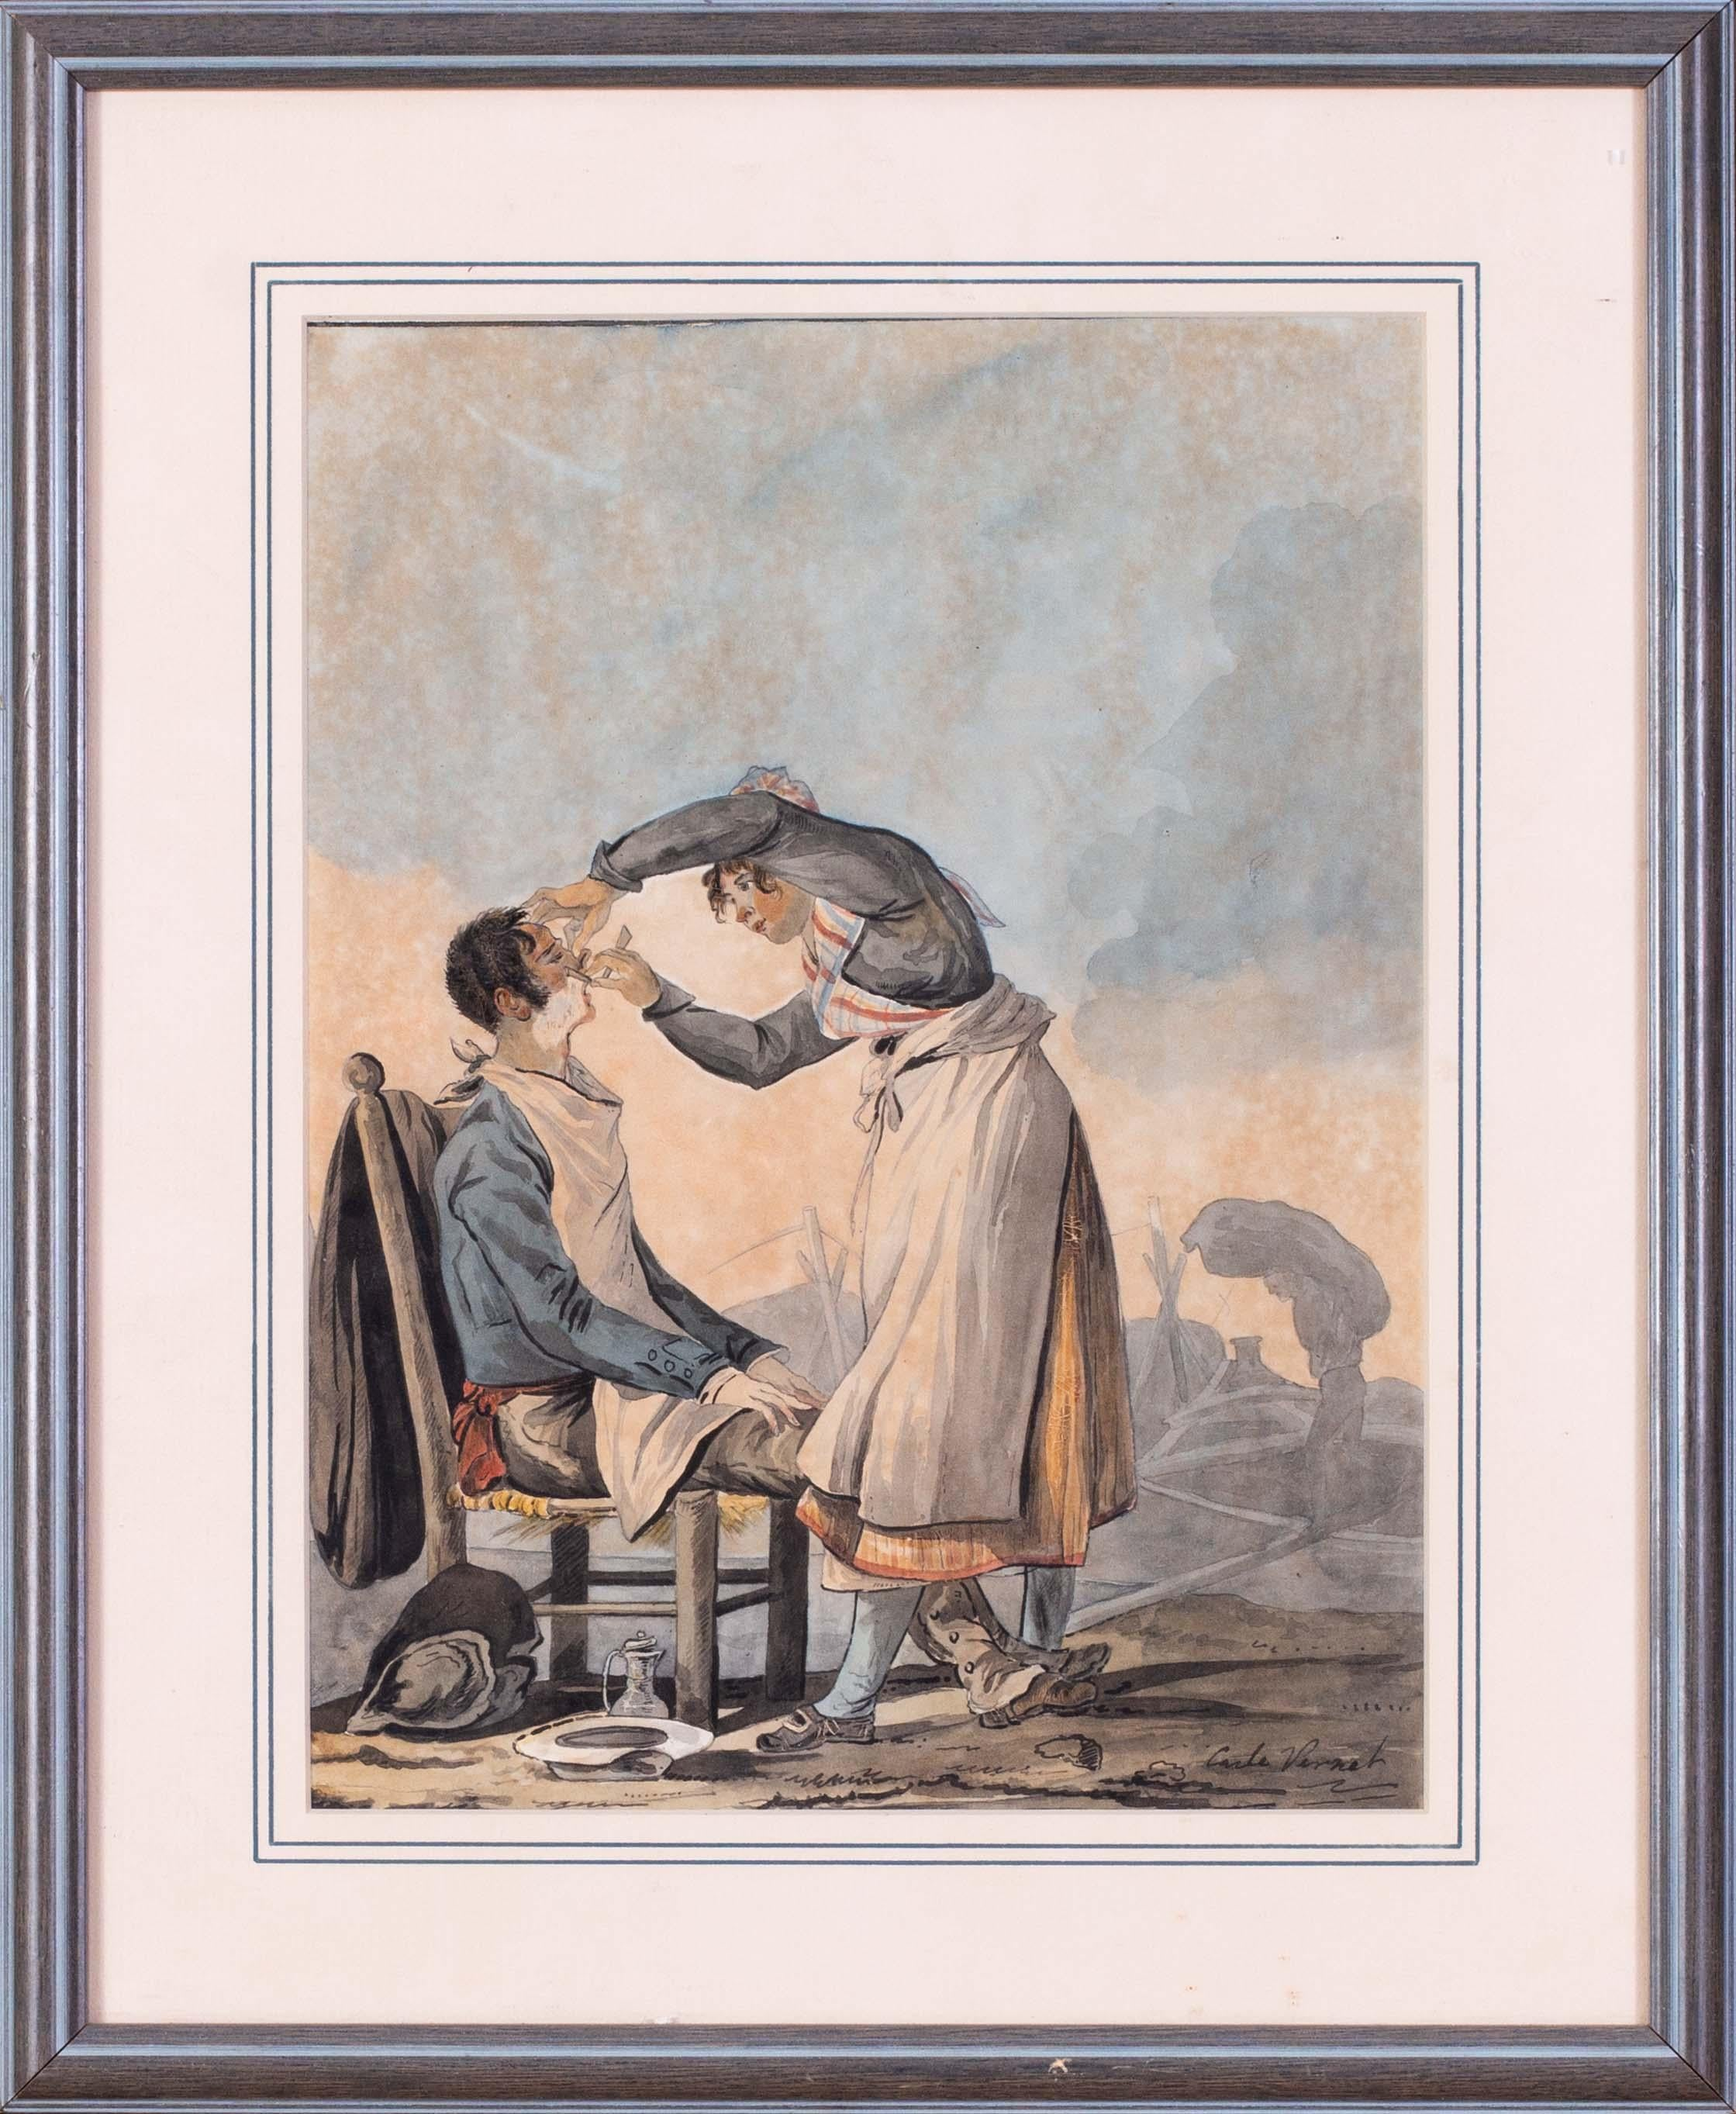 Pair of 18th Century watercolour drawings by Old Master Carle Vernet